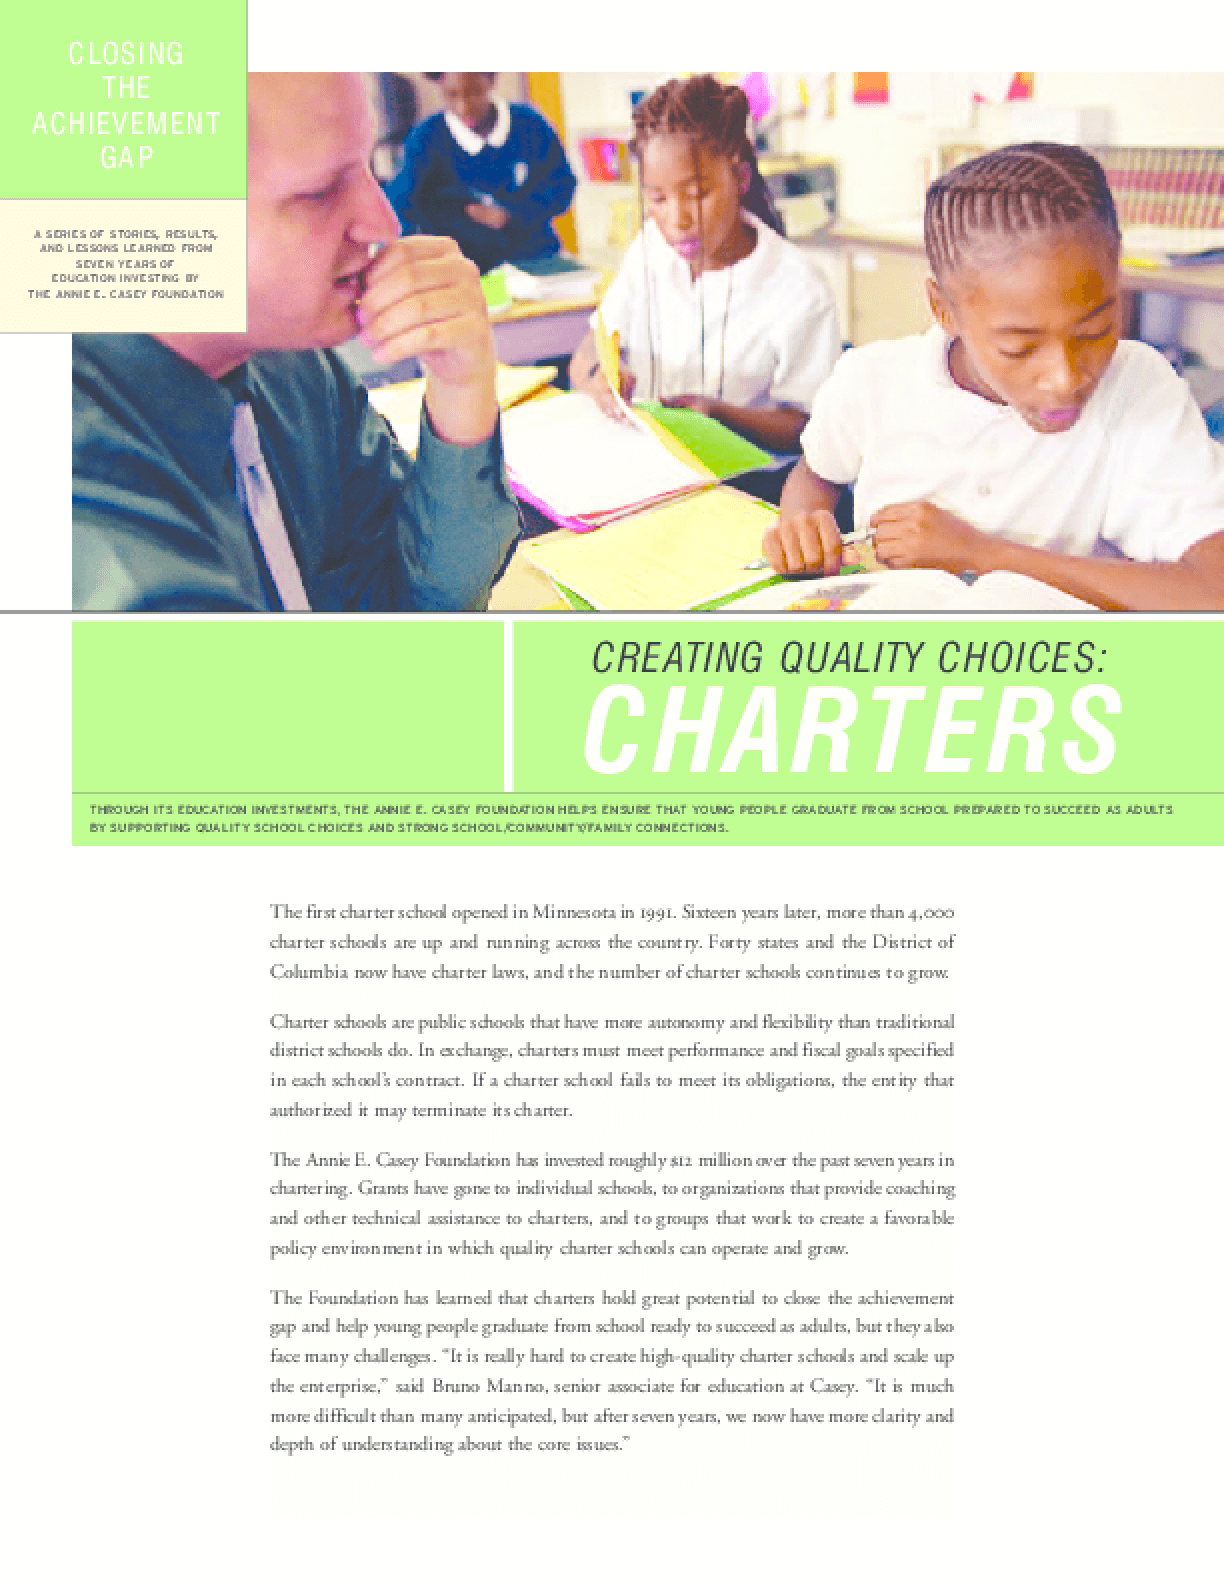 Closing the Achievement Gap: Creating Quality Choices: Charters